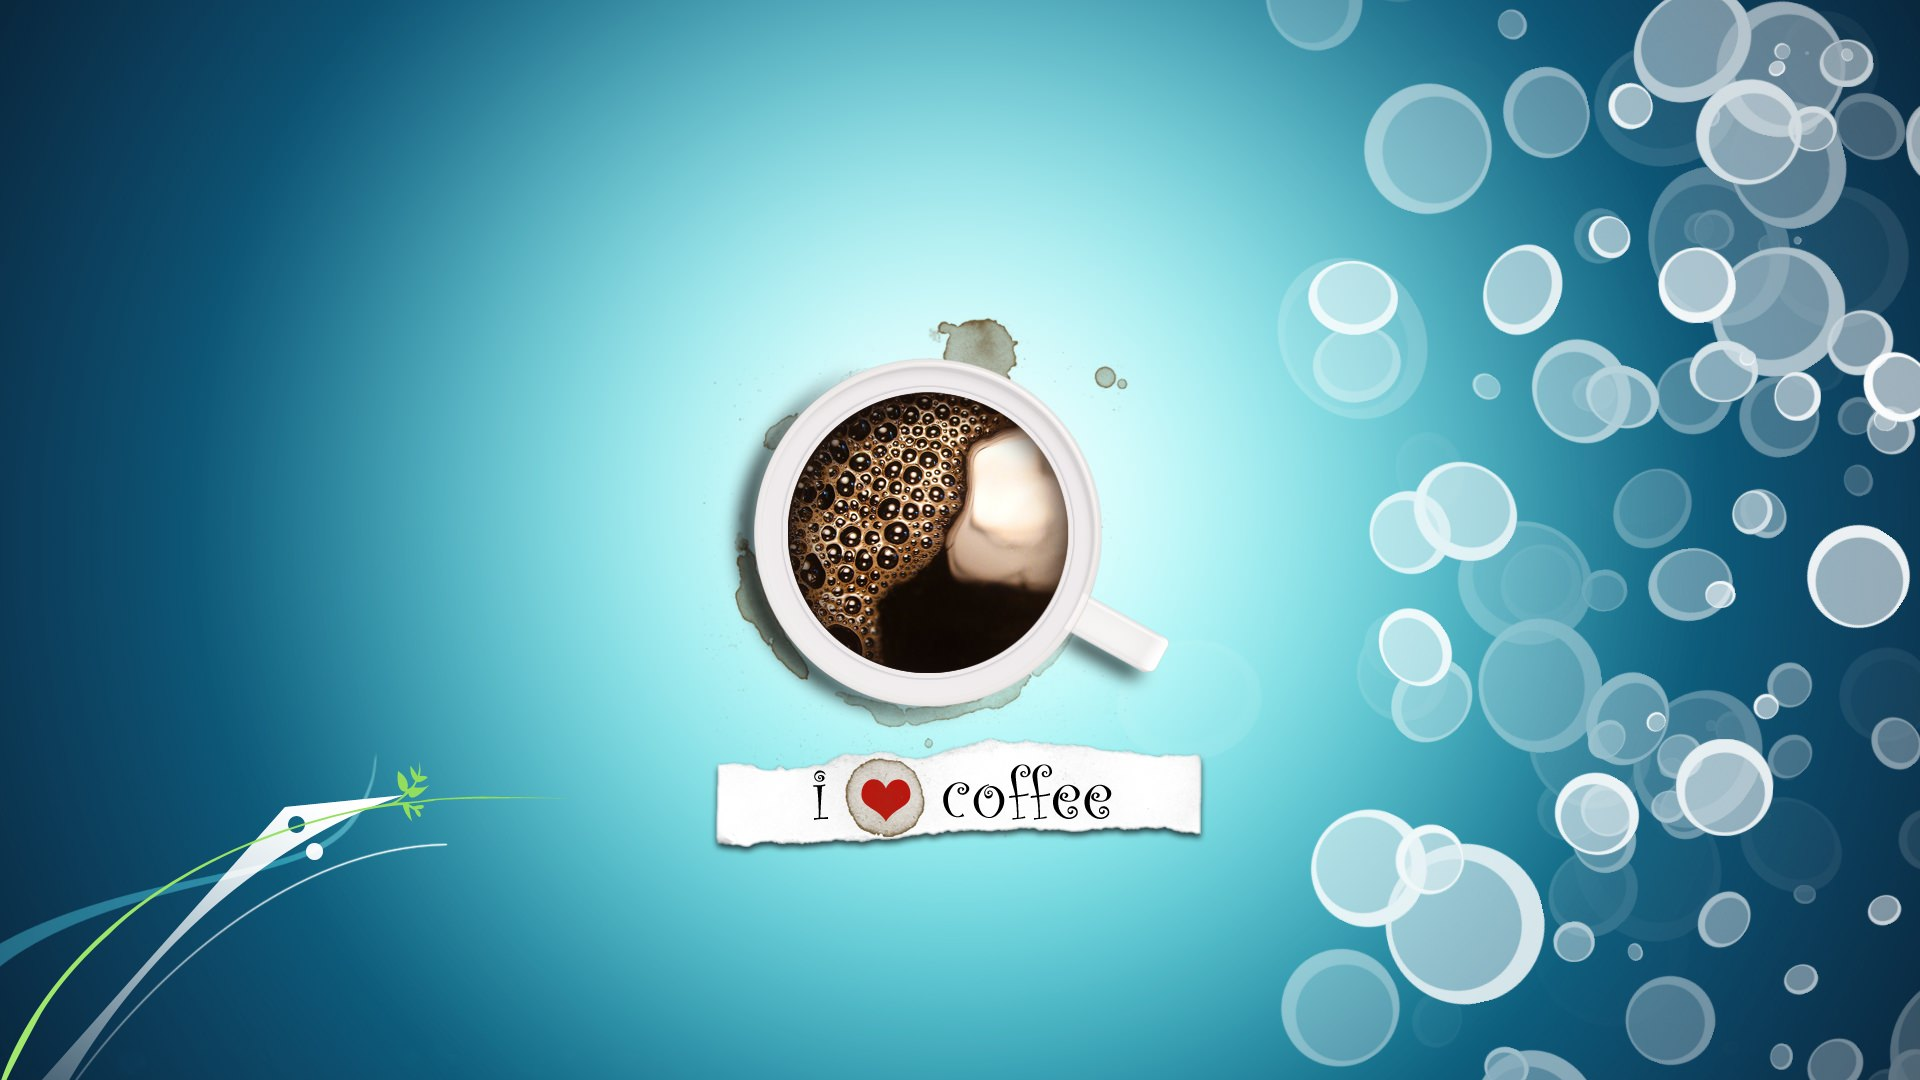 Cool Coffee Wallpaper